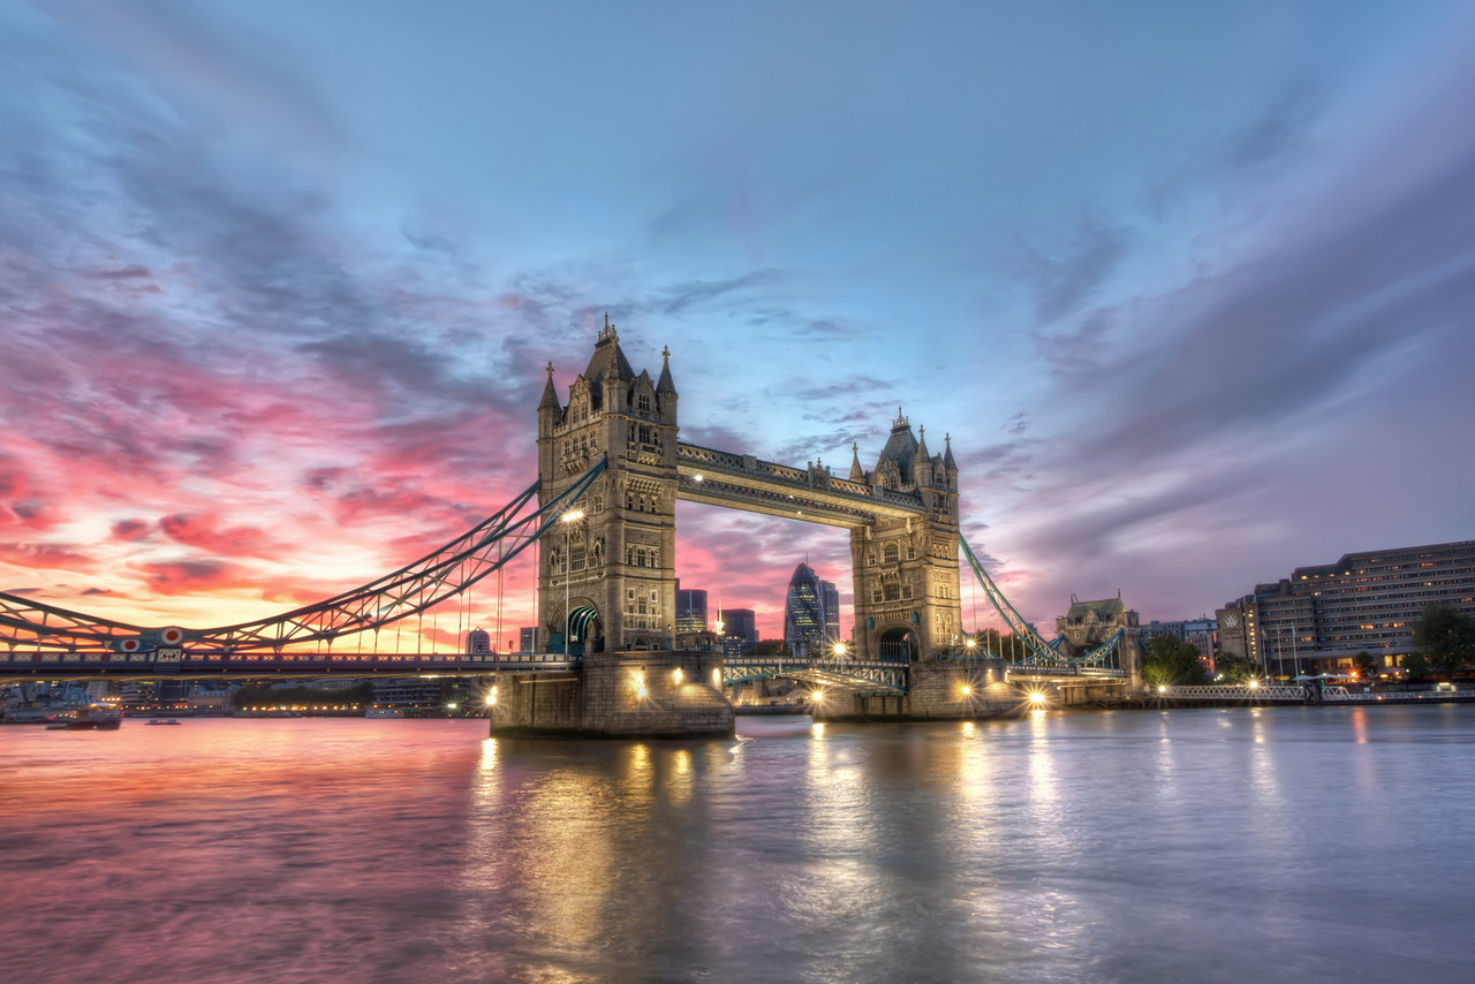 Sunset, Tower Bridge, London, England